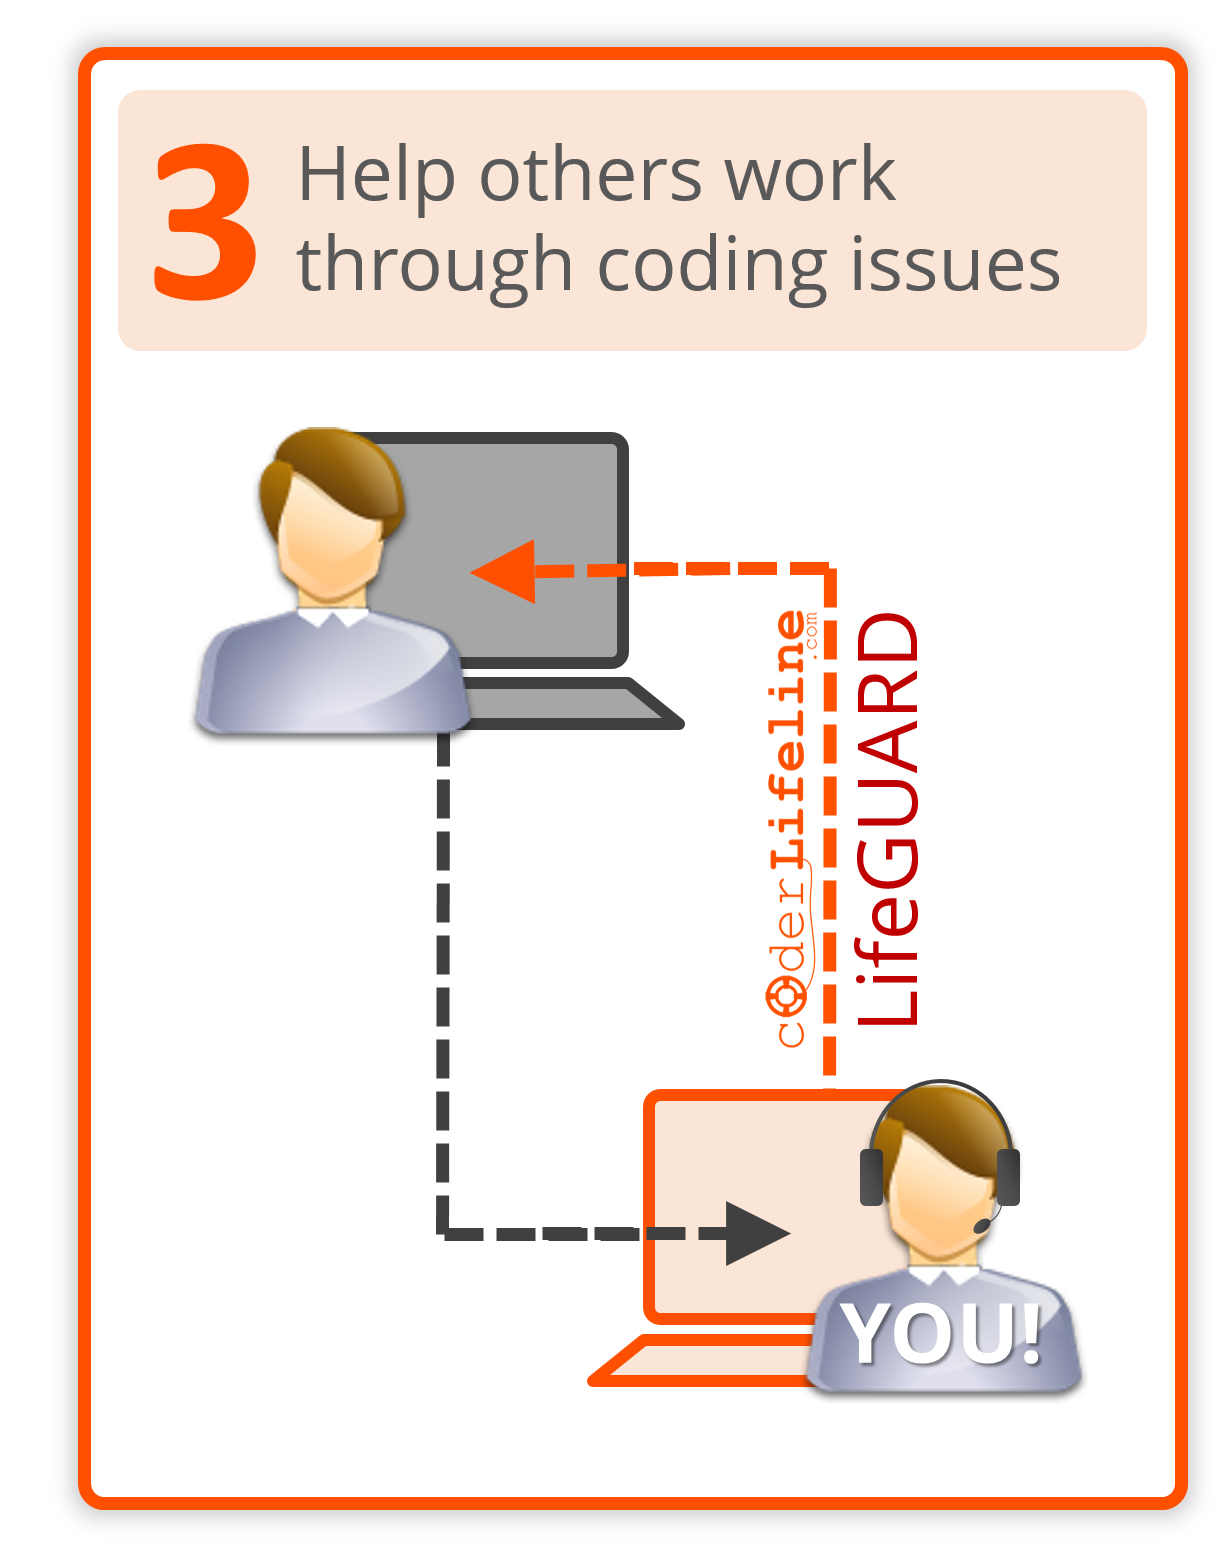 Live Coding Help Member LifeGUARD Step 3 - Help Others Work Through Coding Issues